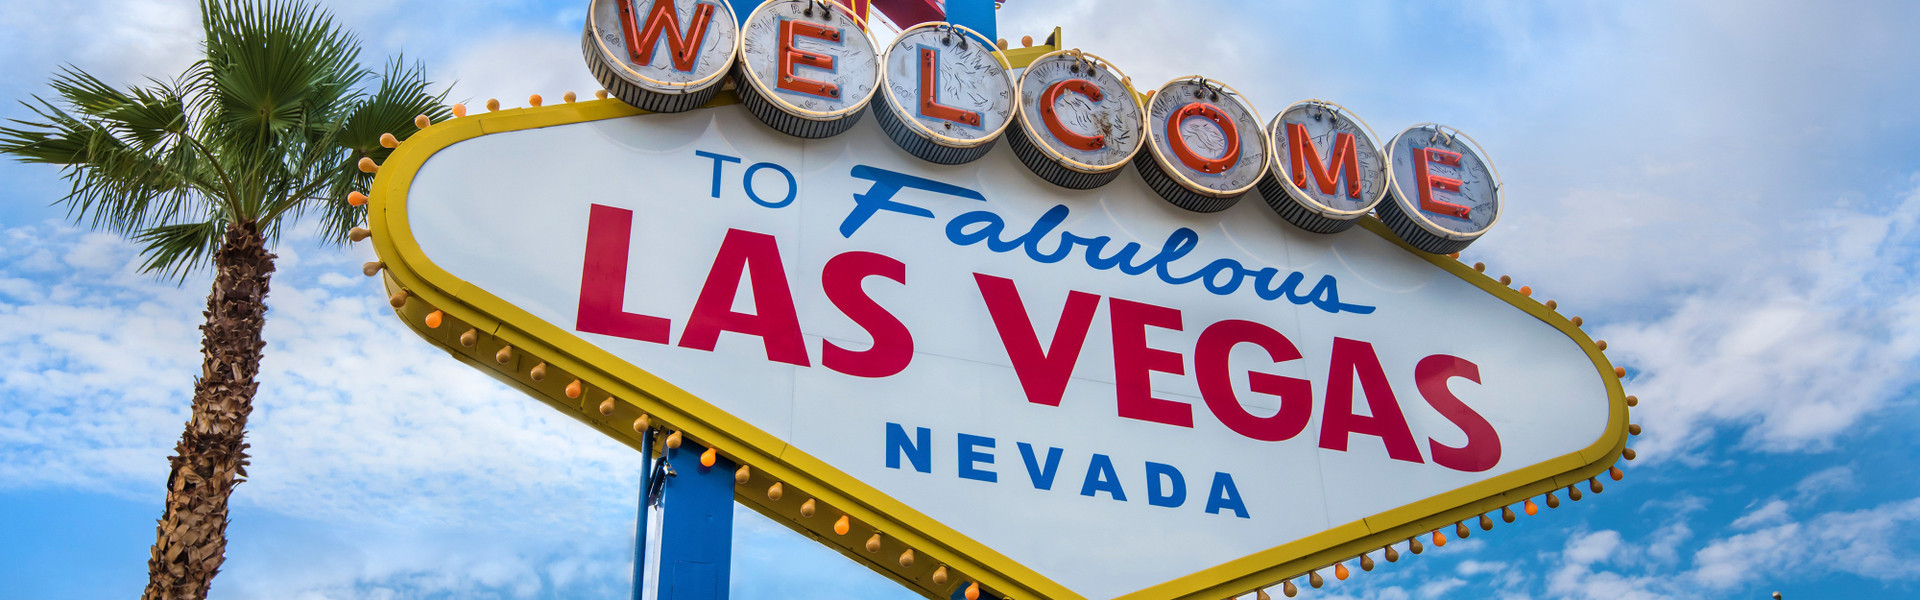 Special Offers for a Las Vegas | Westgate Las Vegas Resort & Casino